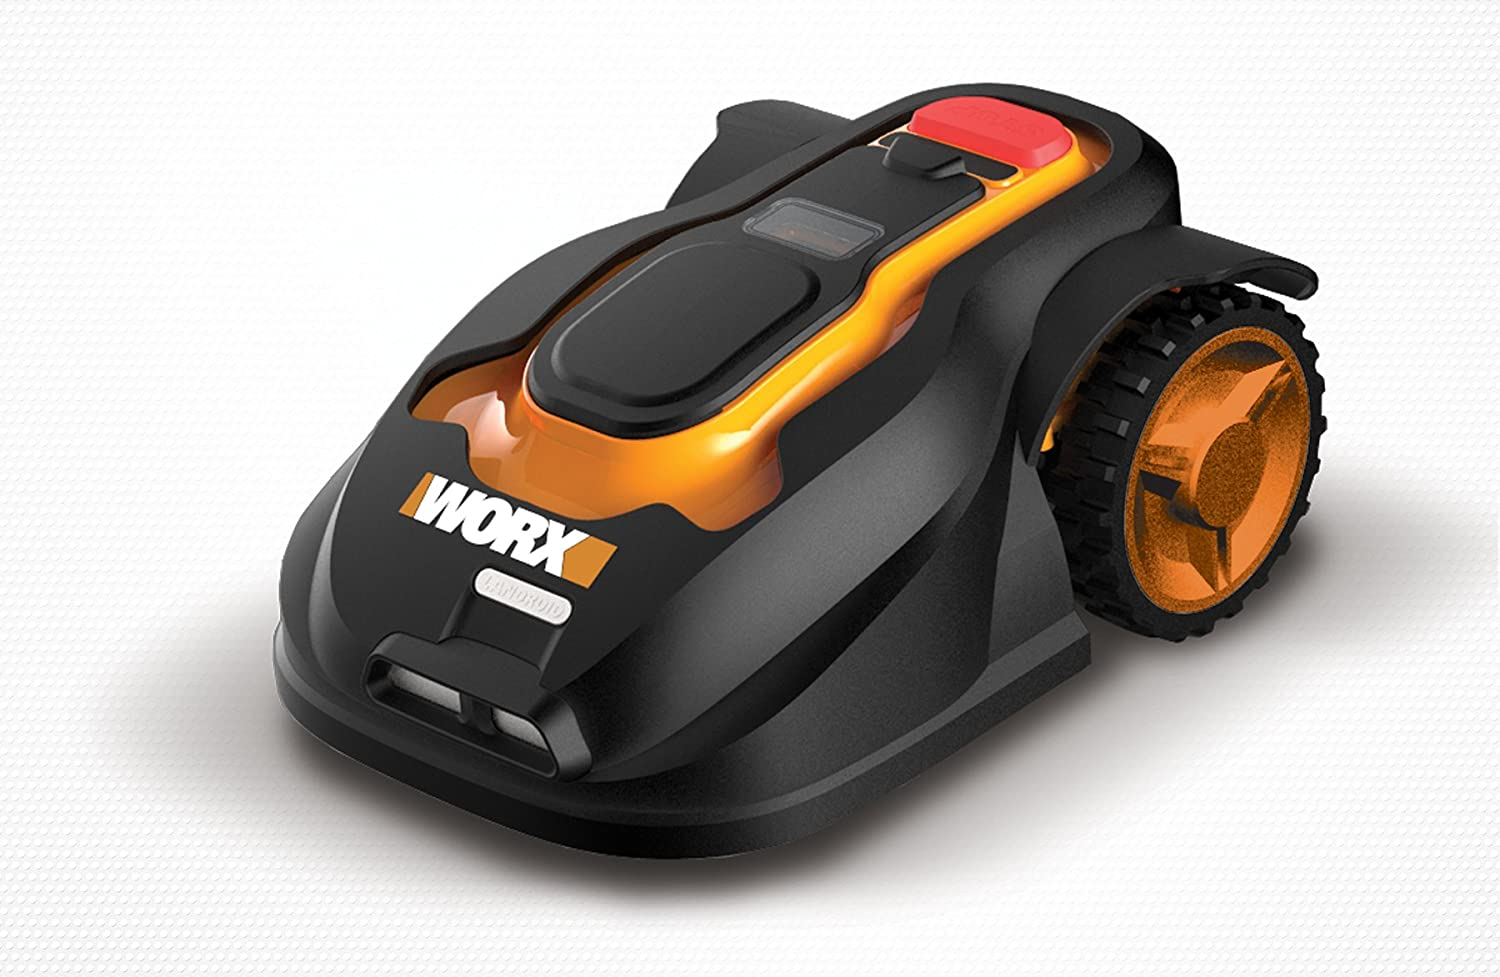 Best Battery Operated Lawn Mowers